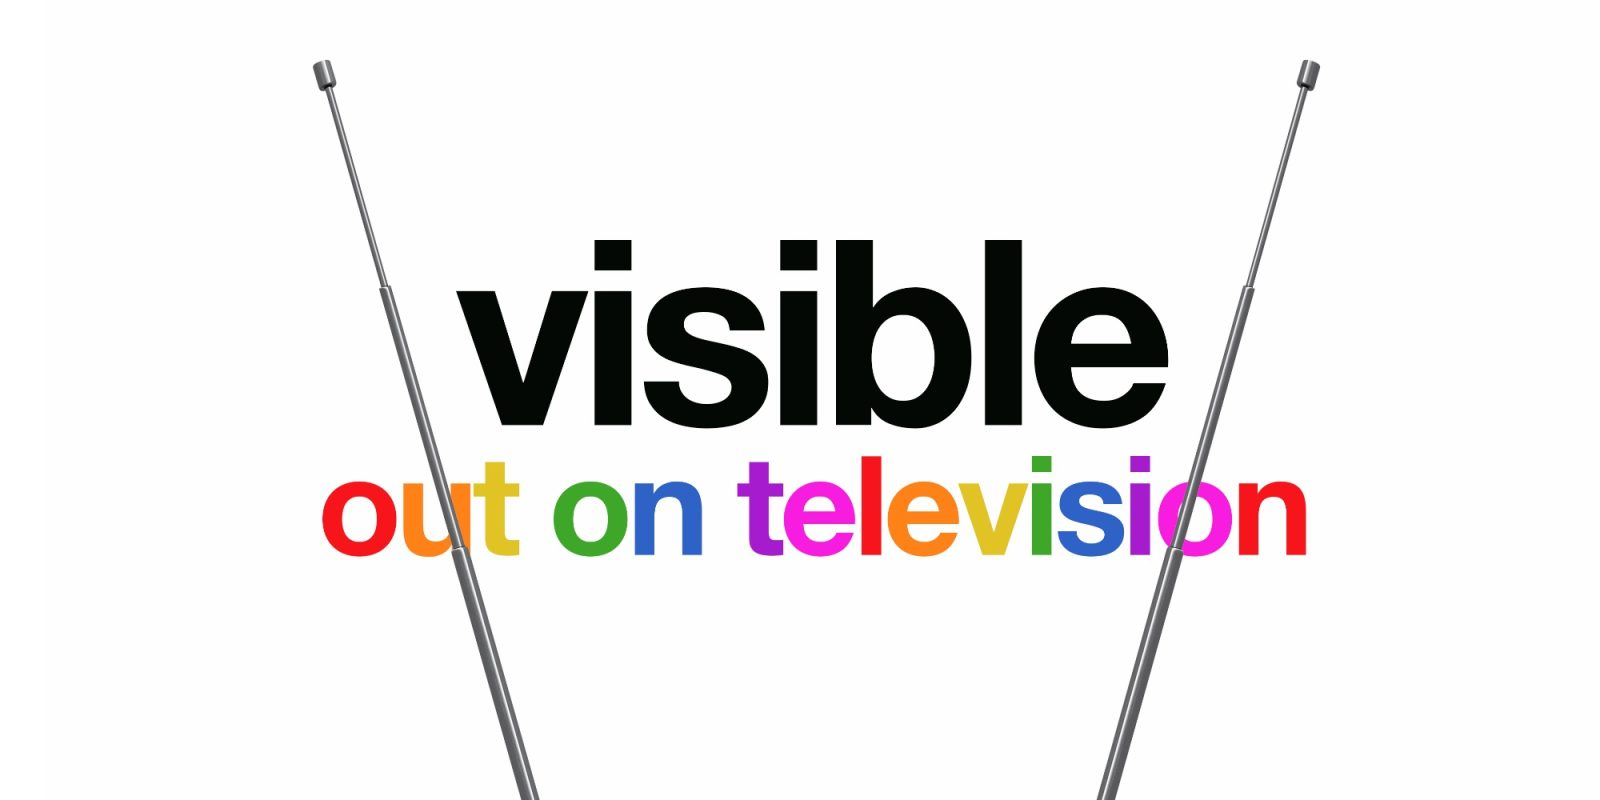 Five-part Apple TV+ docuseries 'Visible' to explore LGBTQ movement and television in February